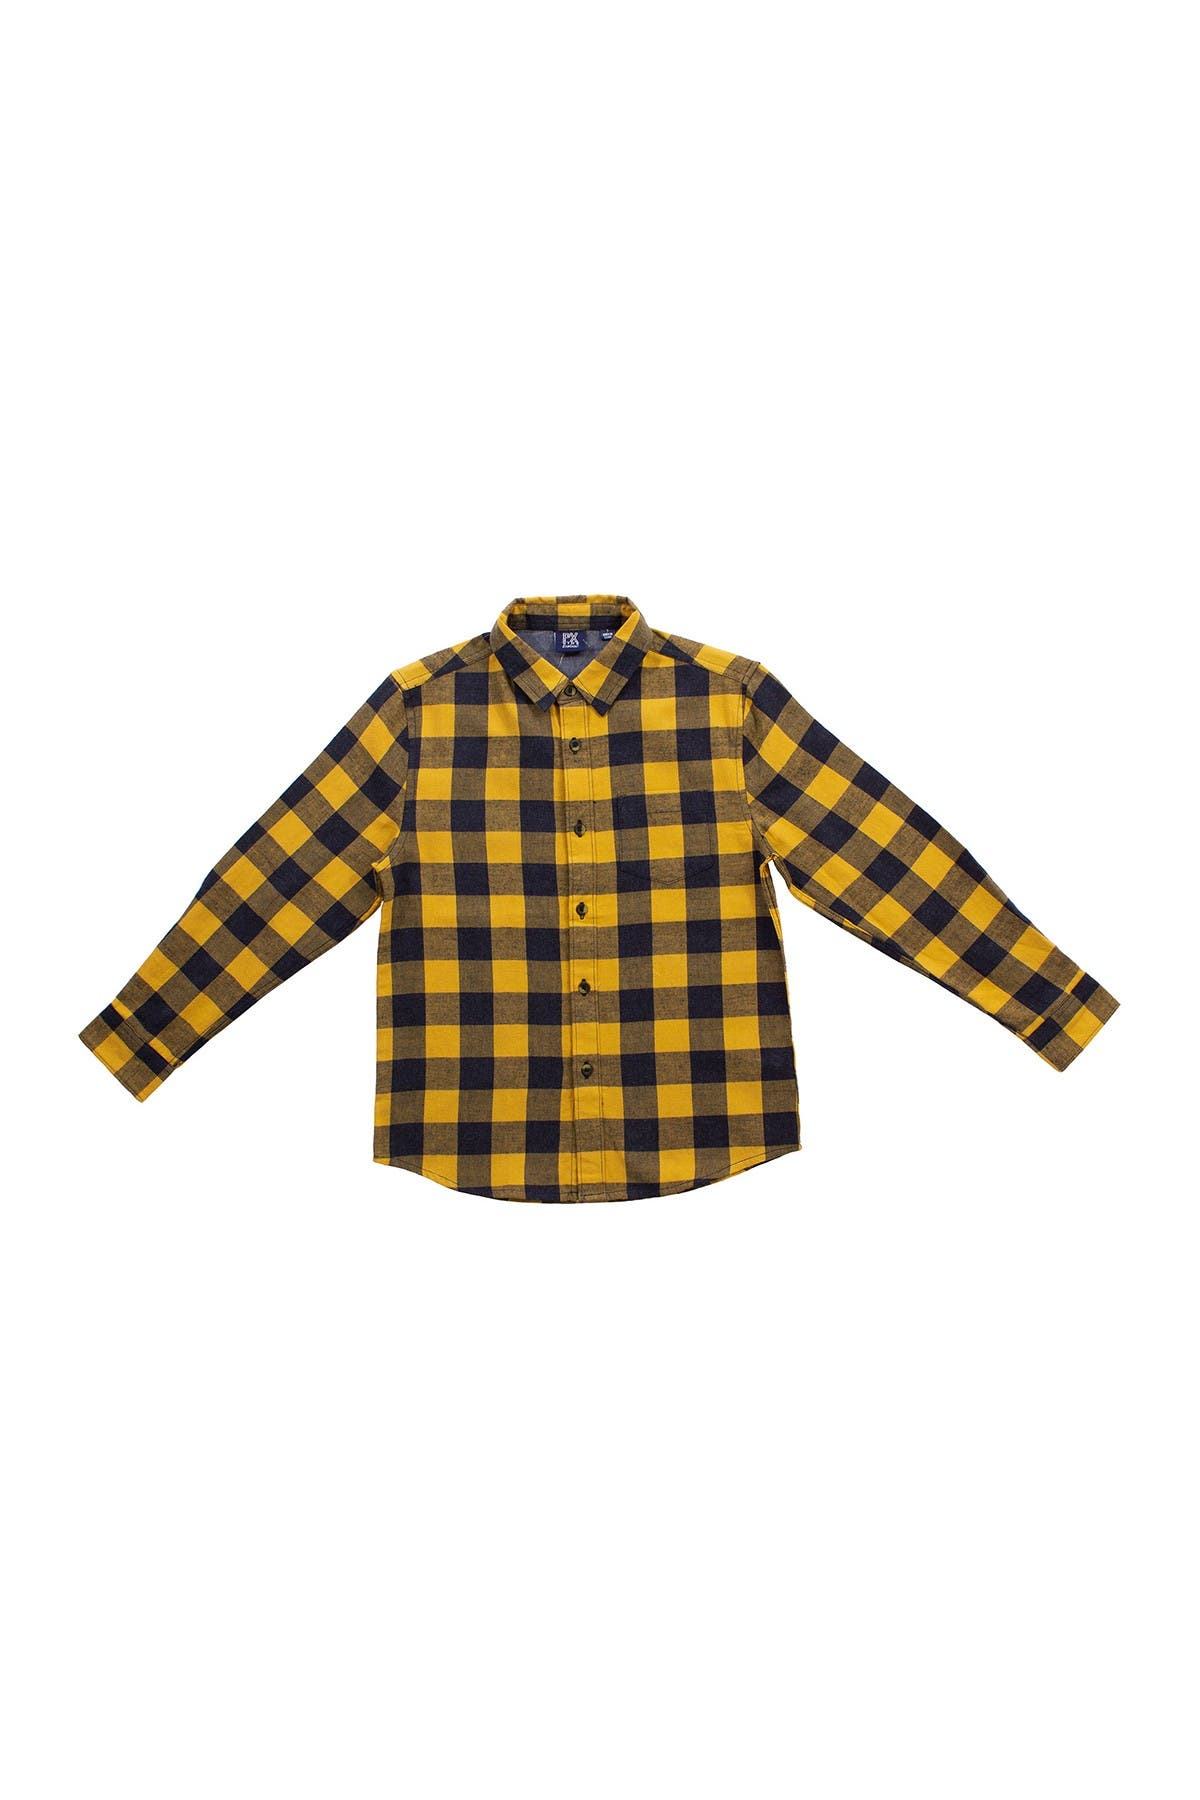 Image of BEAR CAMP Long Sleeve Flannel Button Down